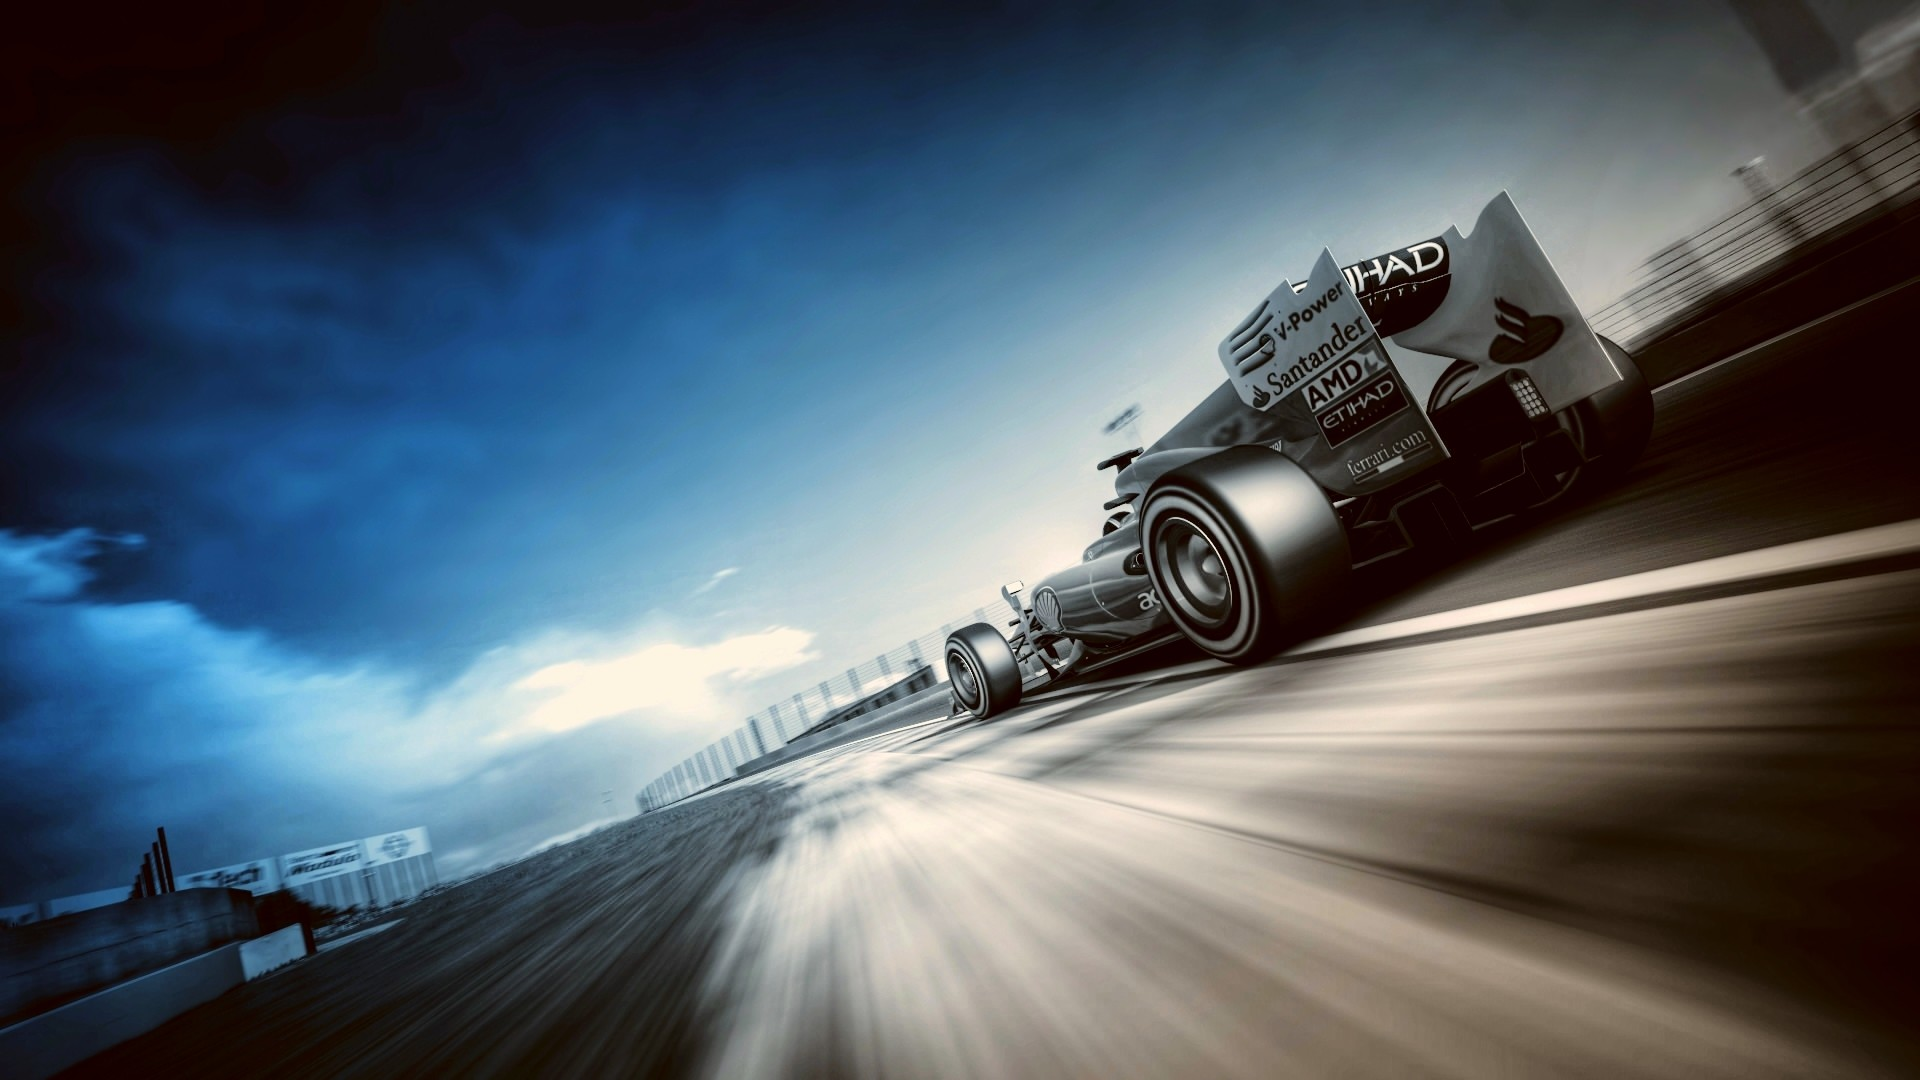 Over 50 Formula One Cars F1 Wallpapers in HD For Download 1920x1080